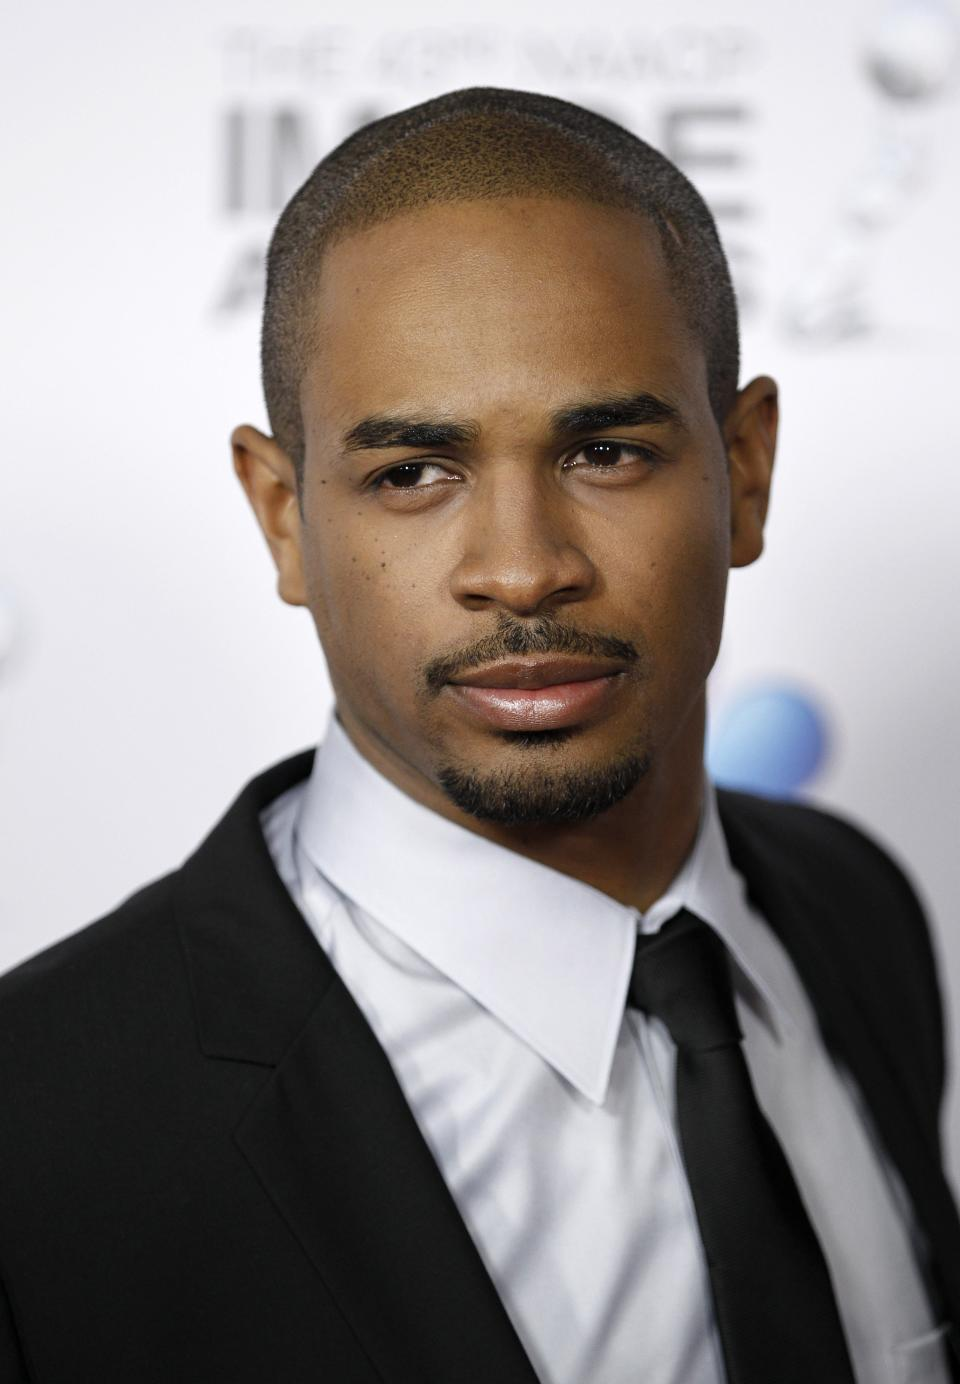 Damon Wayans Jr. arrives at the 43rd NAACP Image Awards on Friday, Feb. 17, 2012, in Los Angeles. (AP Photo/Matt Sayles)